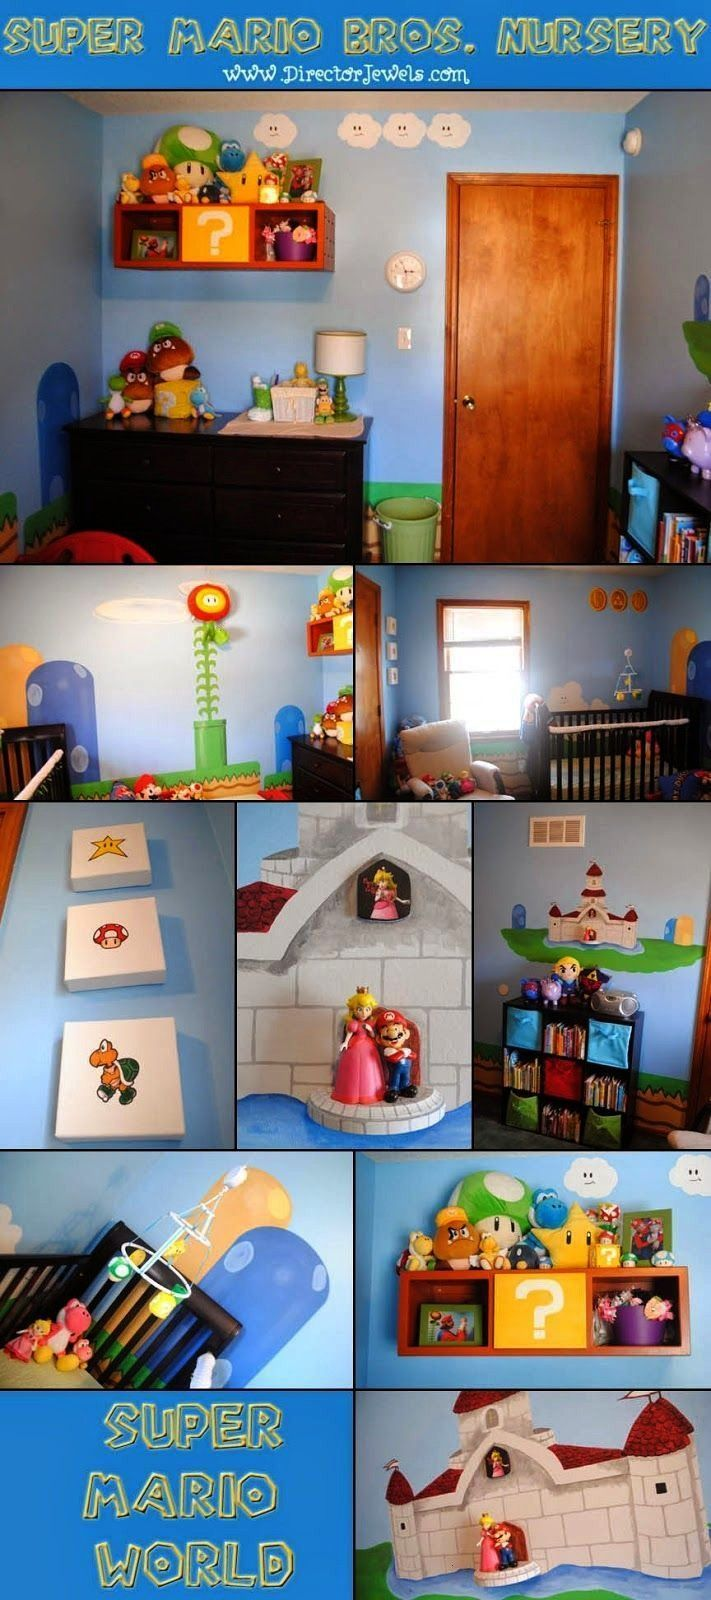 Photo of #directorjewelscom #inspiration #nintendo #nursery #mario